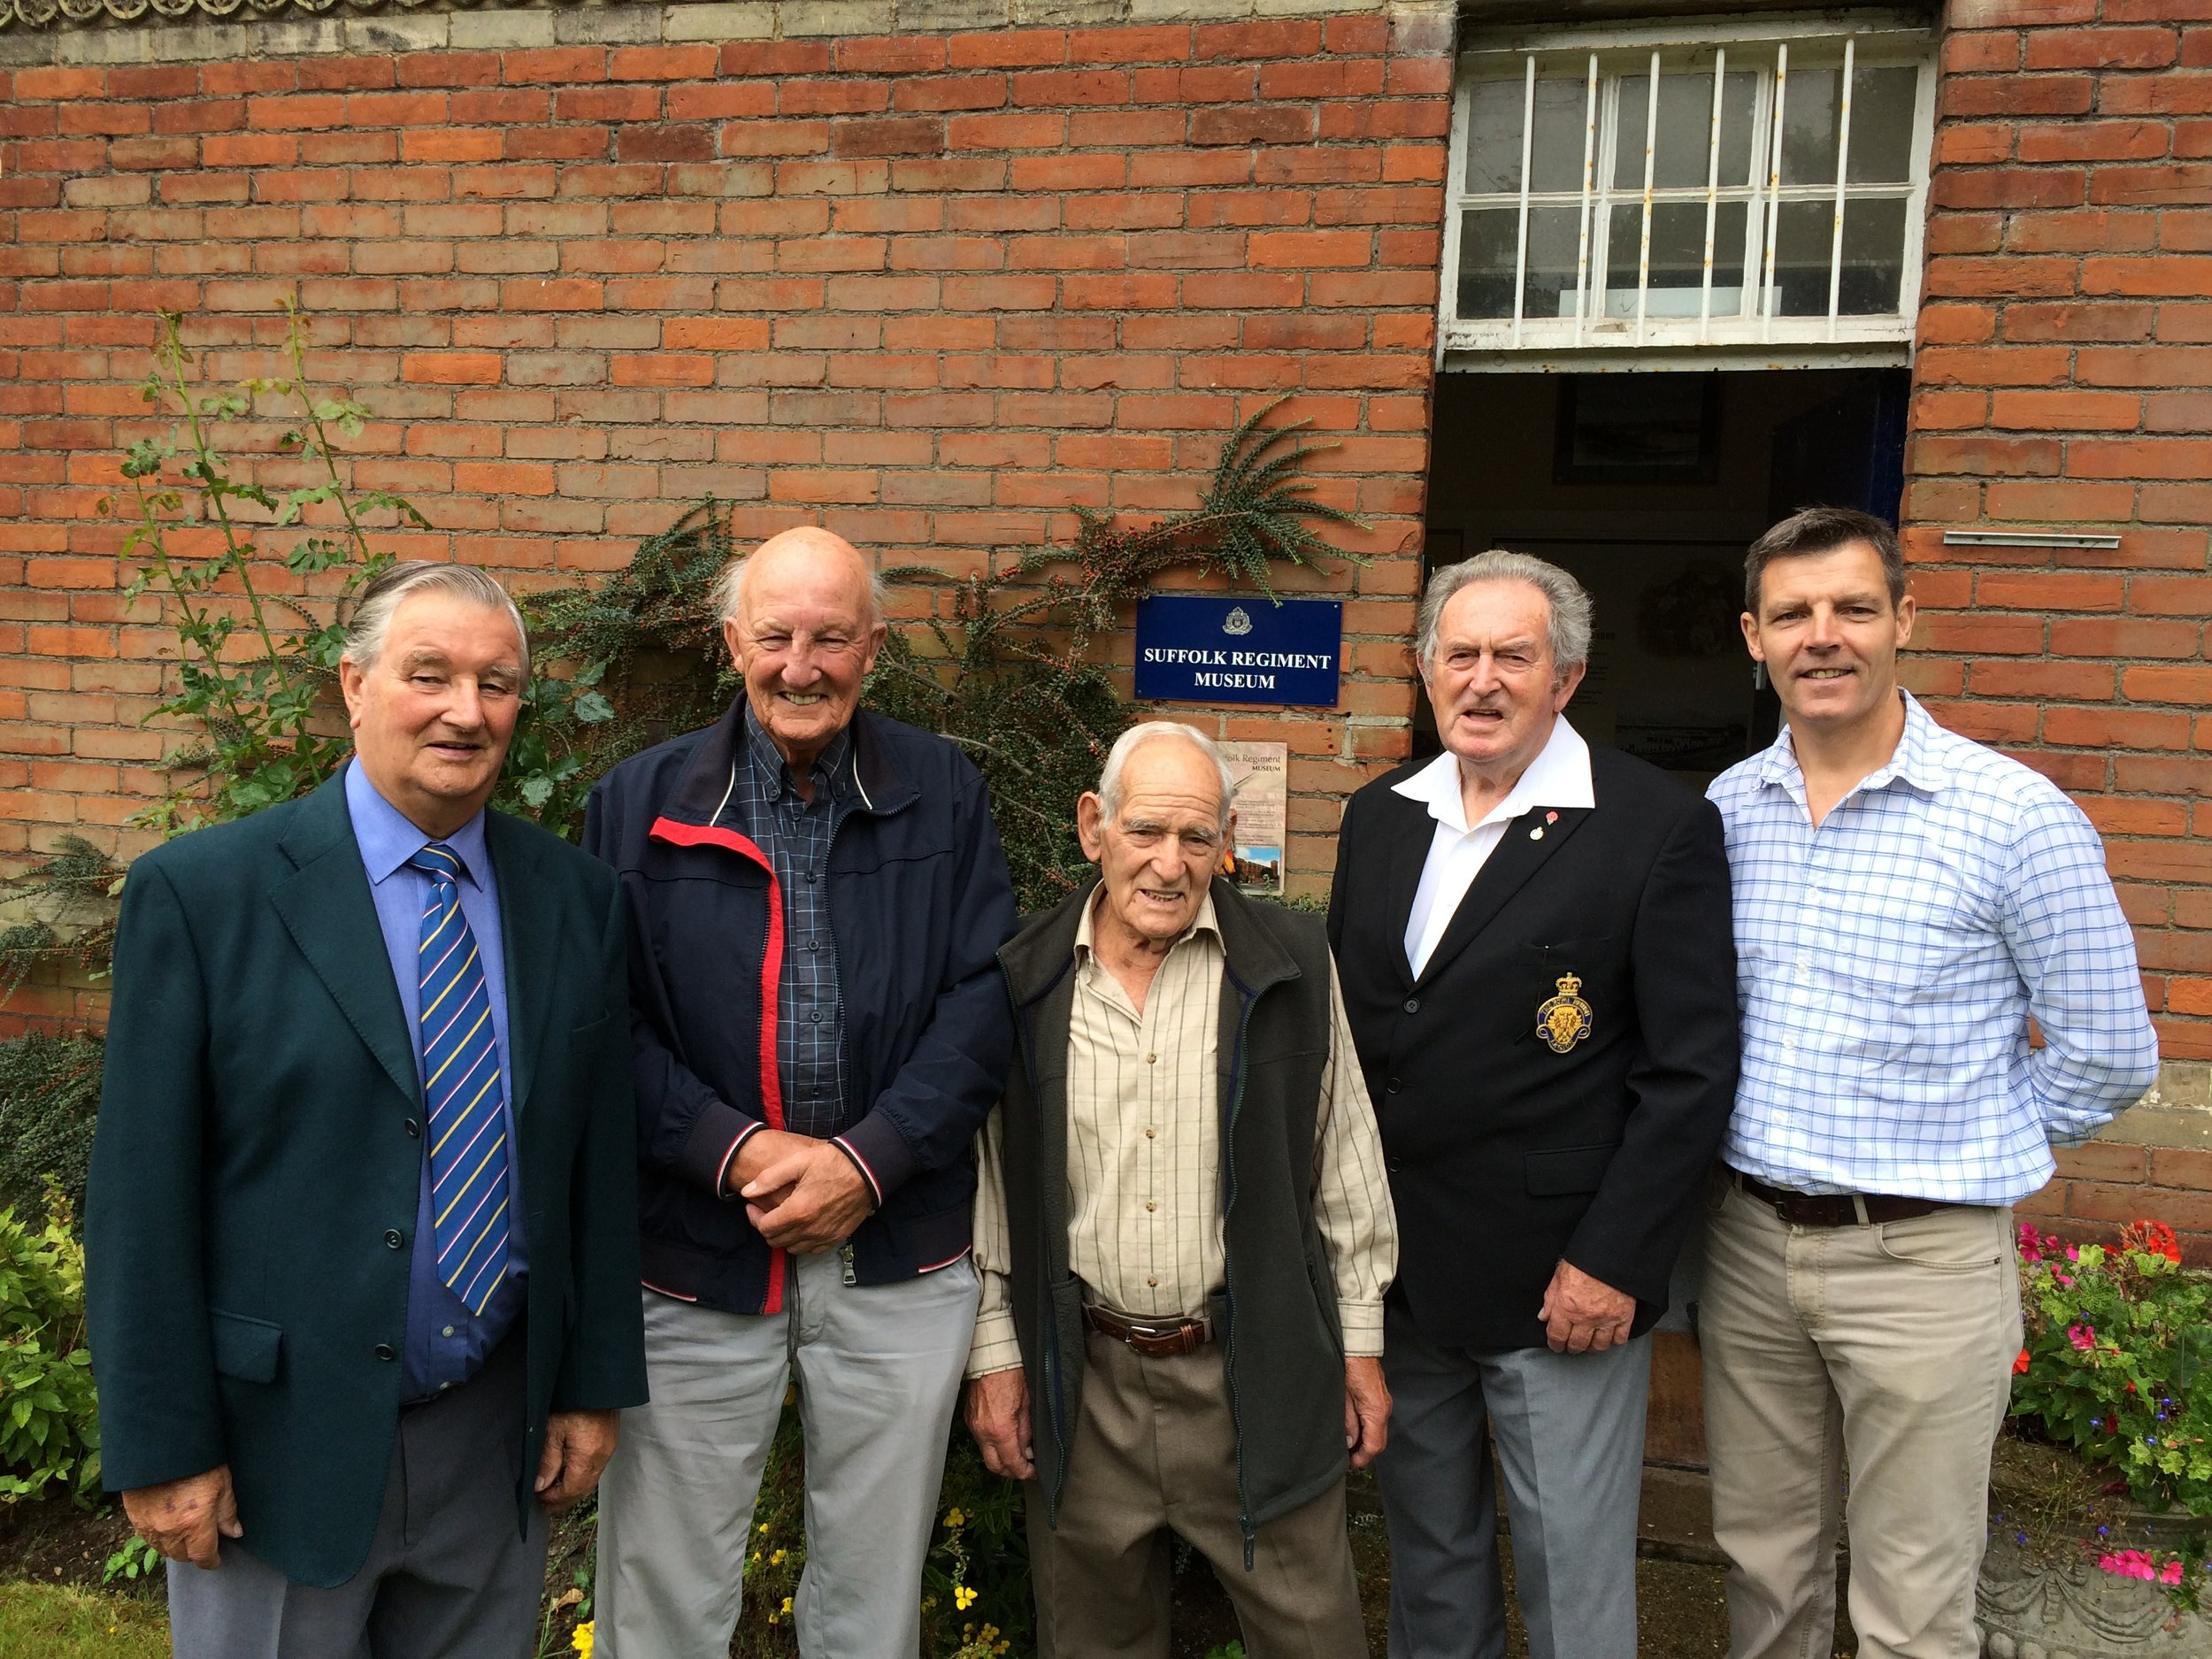 L-R; Vernon Leathers, Terry Wiles, Harry Hughes, Len Davis, Mark Brennan